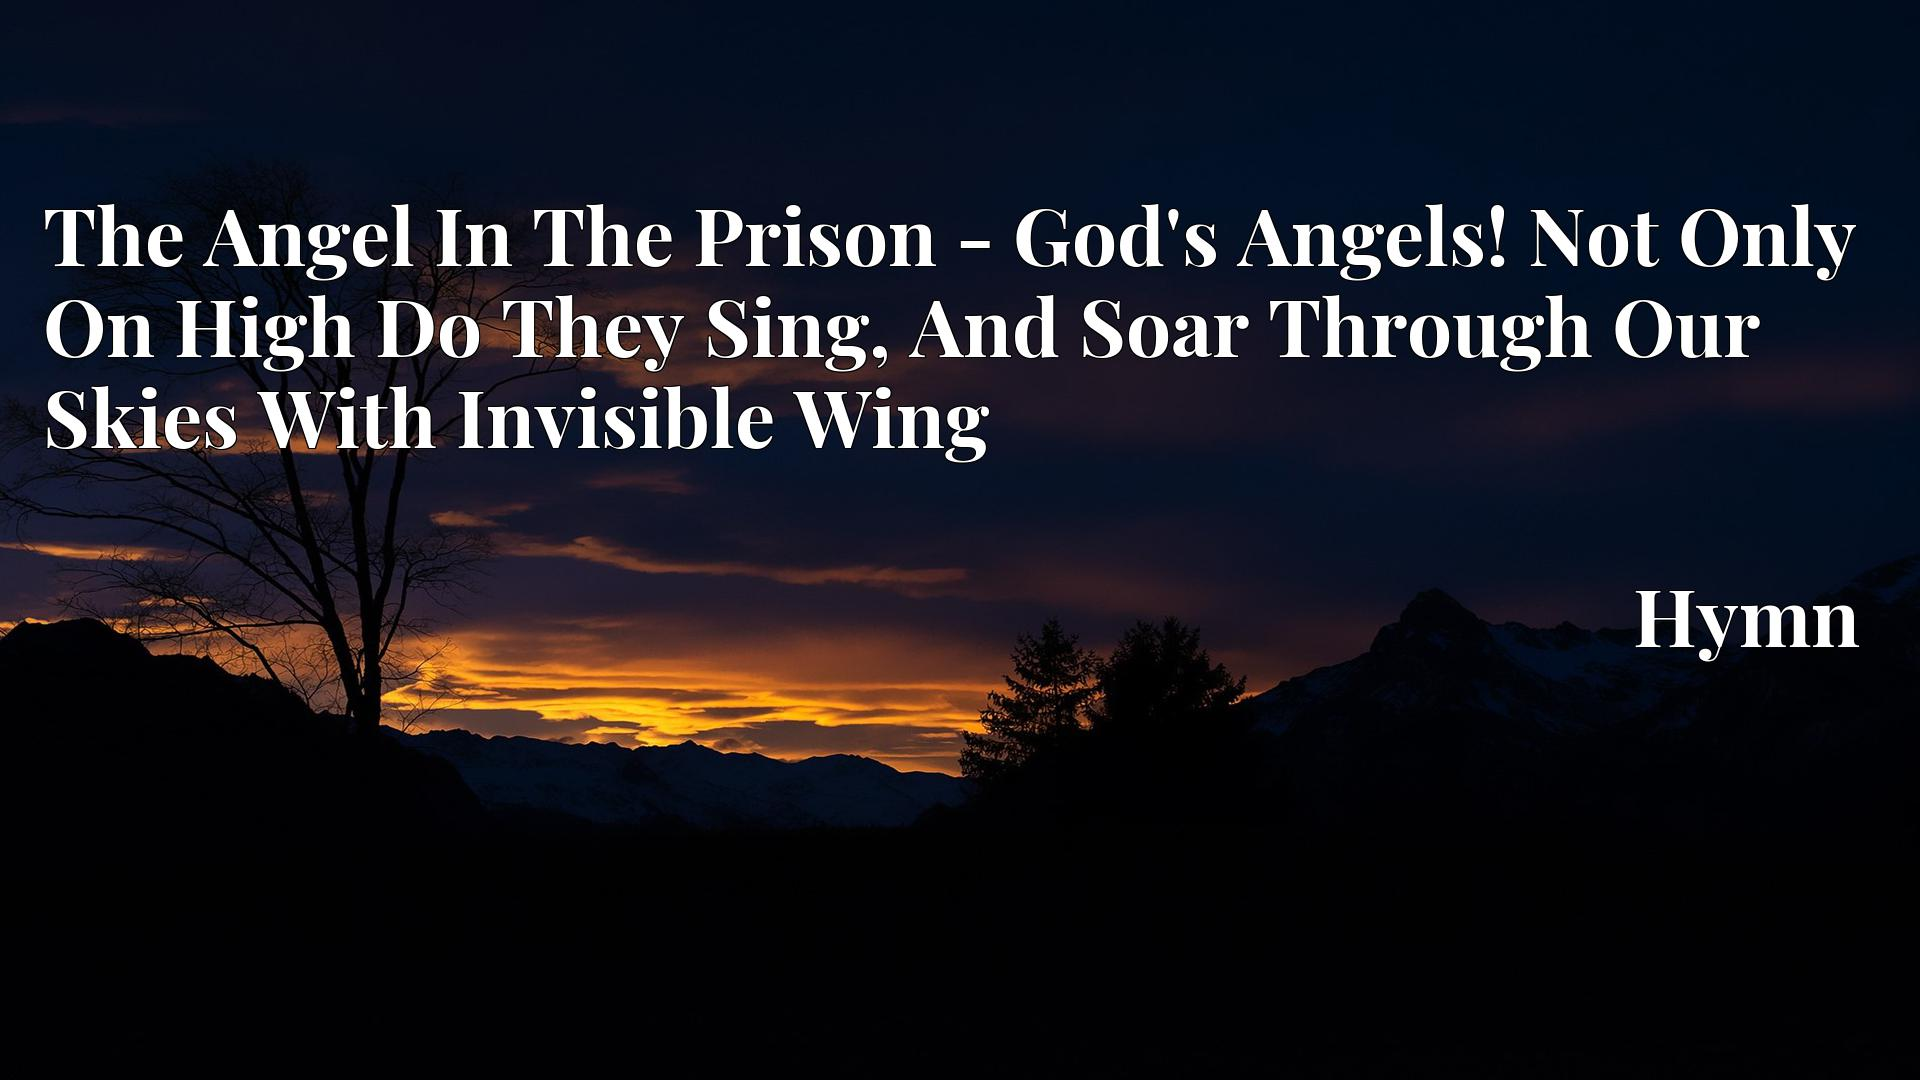 The Angel In The Prison - God's Angels! Not Only On High Do They Sing, And Soar Through Our Skies With Invisible Wing - Hymn